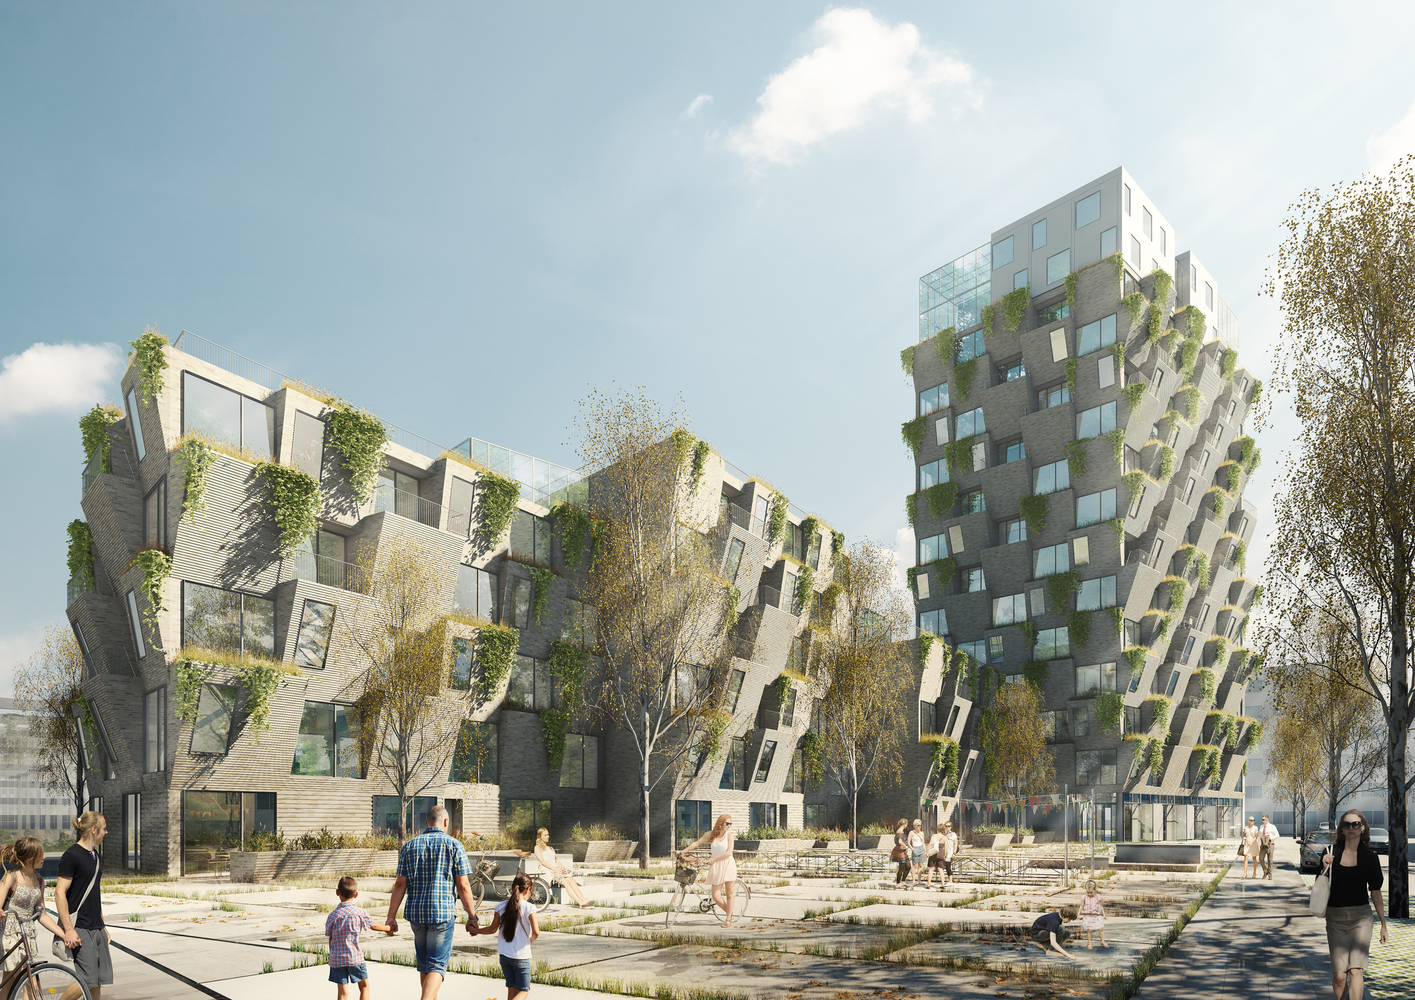 Studio LOKAL wins Copenhagen competition with residential towers Studio LOKAL Studio LOKAL wins Copenhagen competition with residential towers Studio LOKAL wins Copenhagen competition with residential towers 4